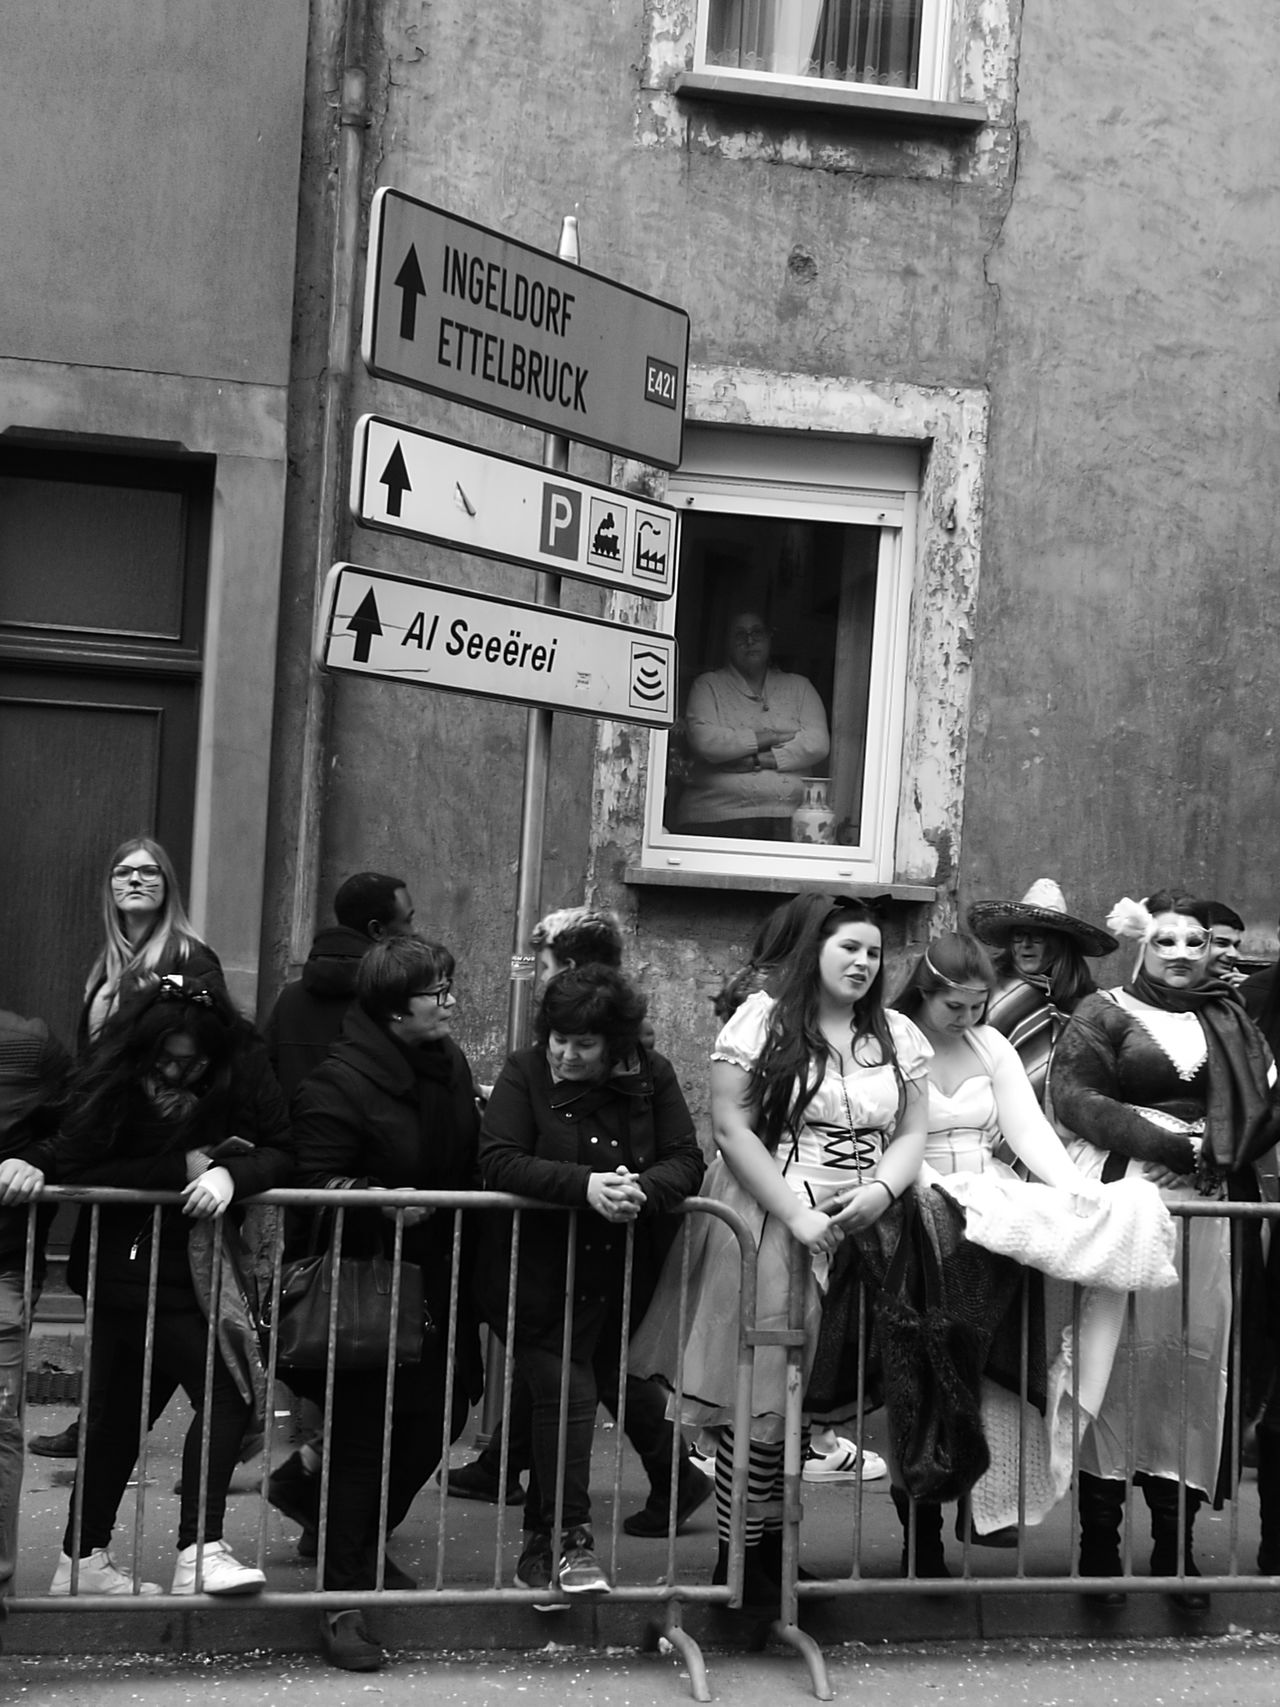 Carnival Crowds And Details Arts Culture And Entertainment Women Adult Adults Only Building Exterior People Outdoors Full Length City Architecture Day Men Togetherness Carnival In Luxembourg Diekirch Women In The Window Watching Luxembourg Streetphotography Luxembourg_Collection Black And White Photography Carnival